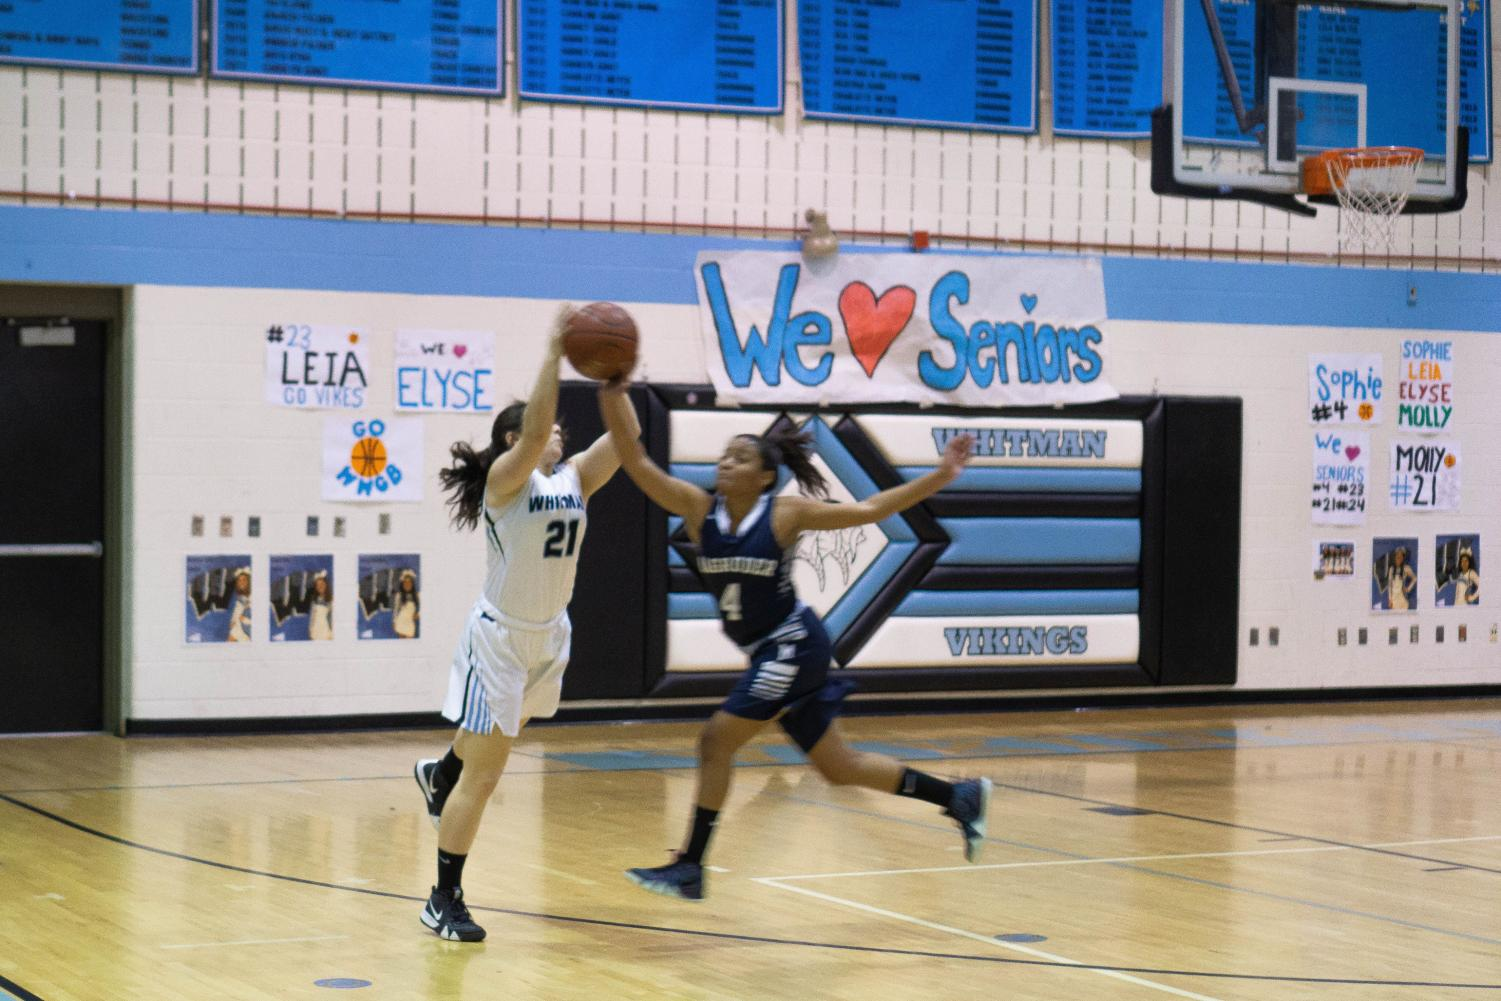 Senior Molly Knox reaches for the ball. Whitman played Magruder on senior night, an annual tradition to honor an end to four years on Whitman basketball.